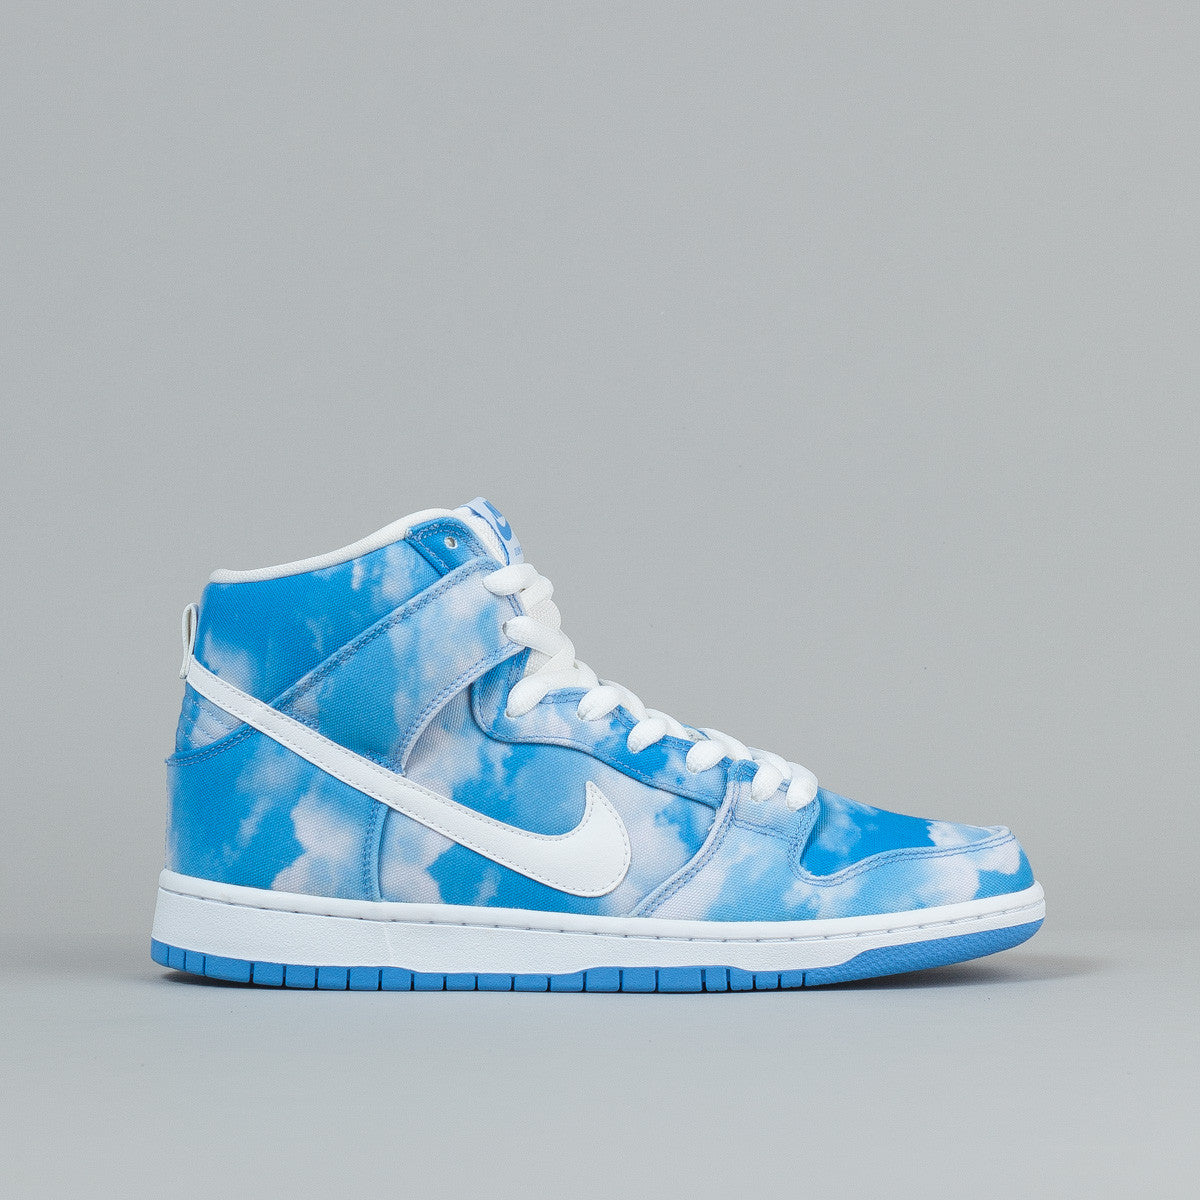 Nike SB Dunk High Pro Shoes